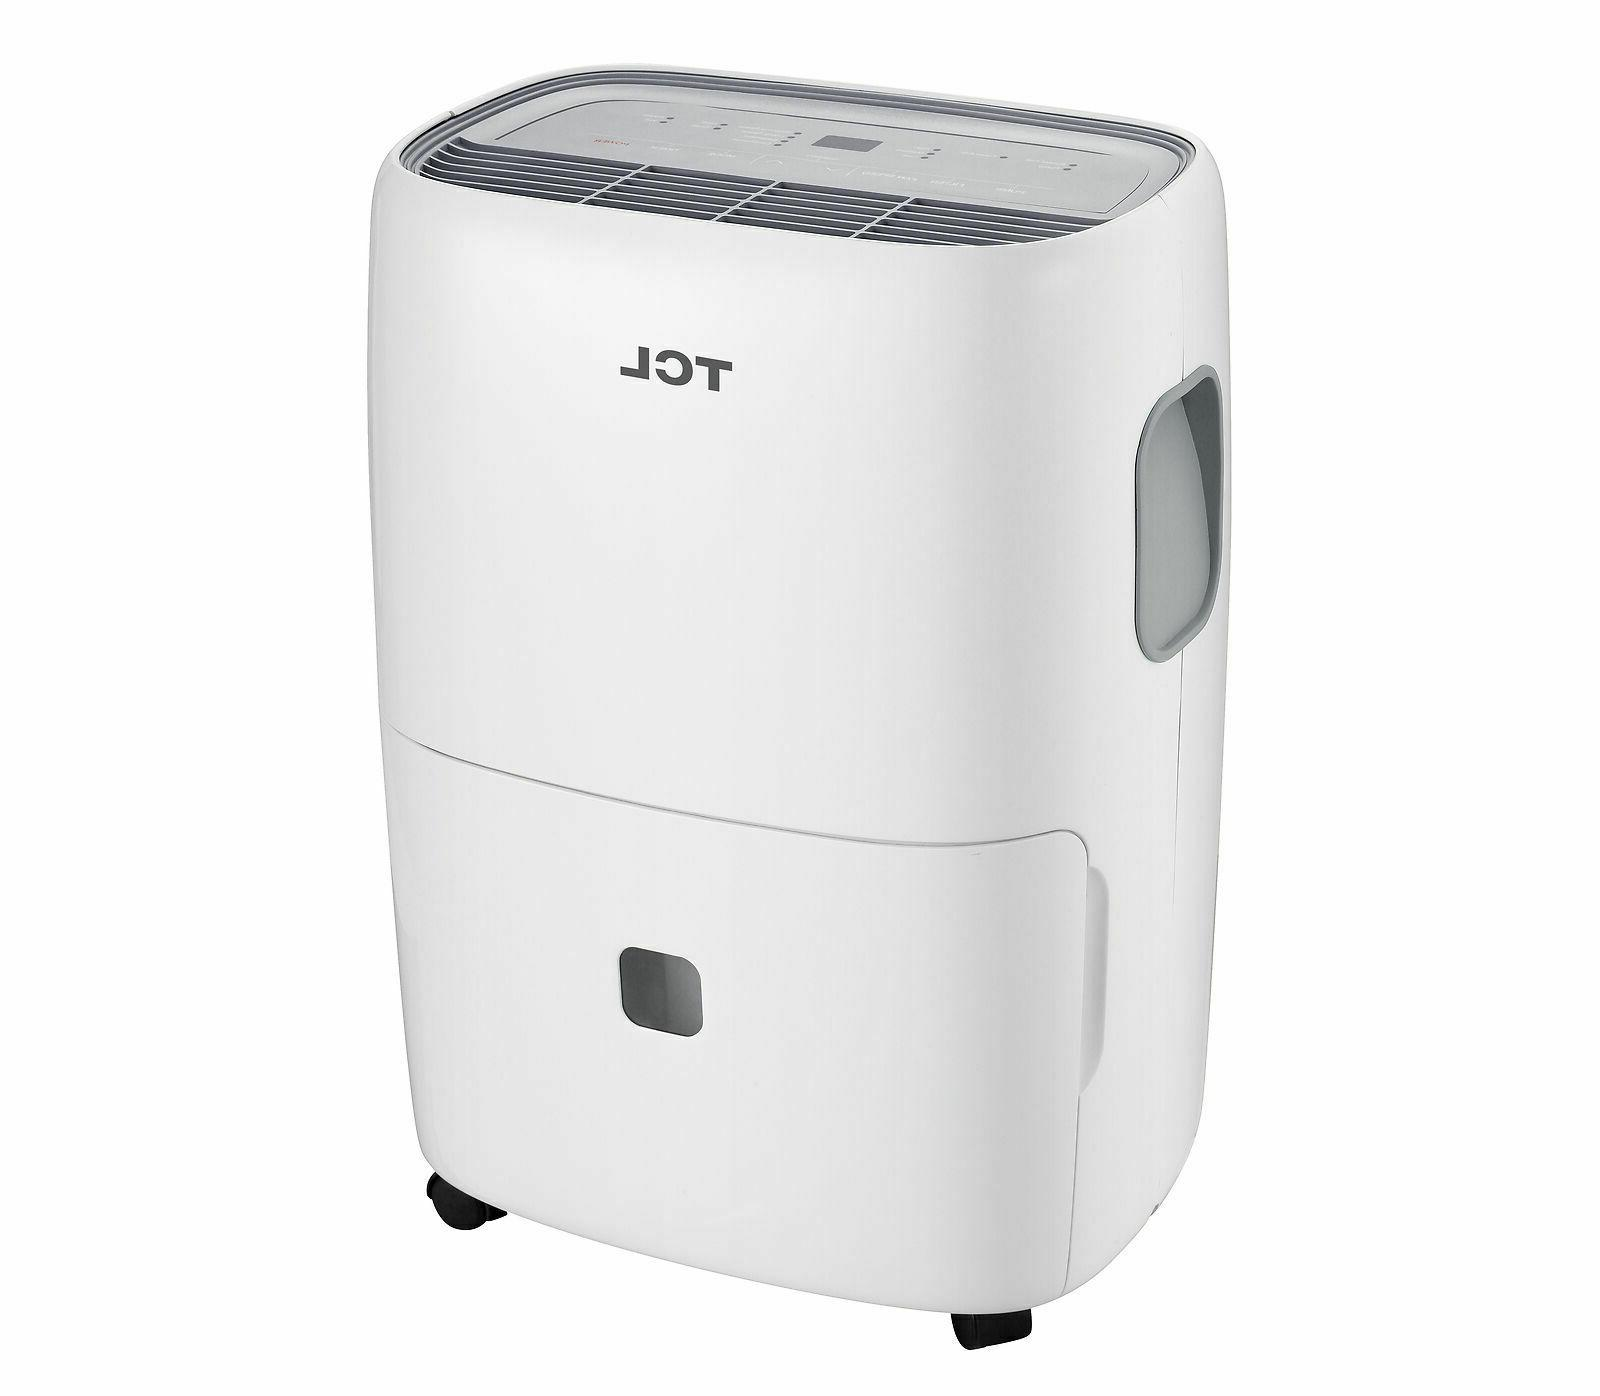 TCL 50 Pint Dehumidifier with Auto Defrost Feature - White